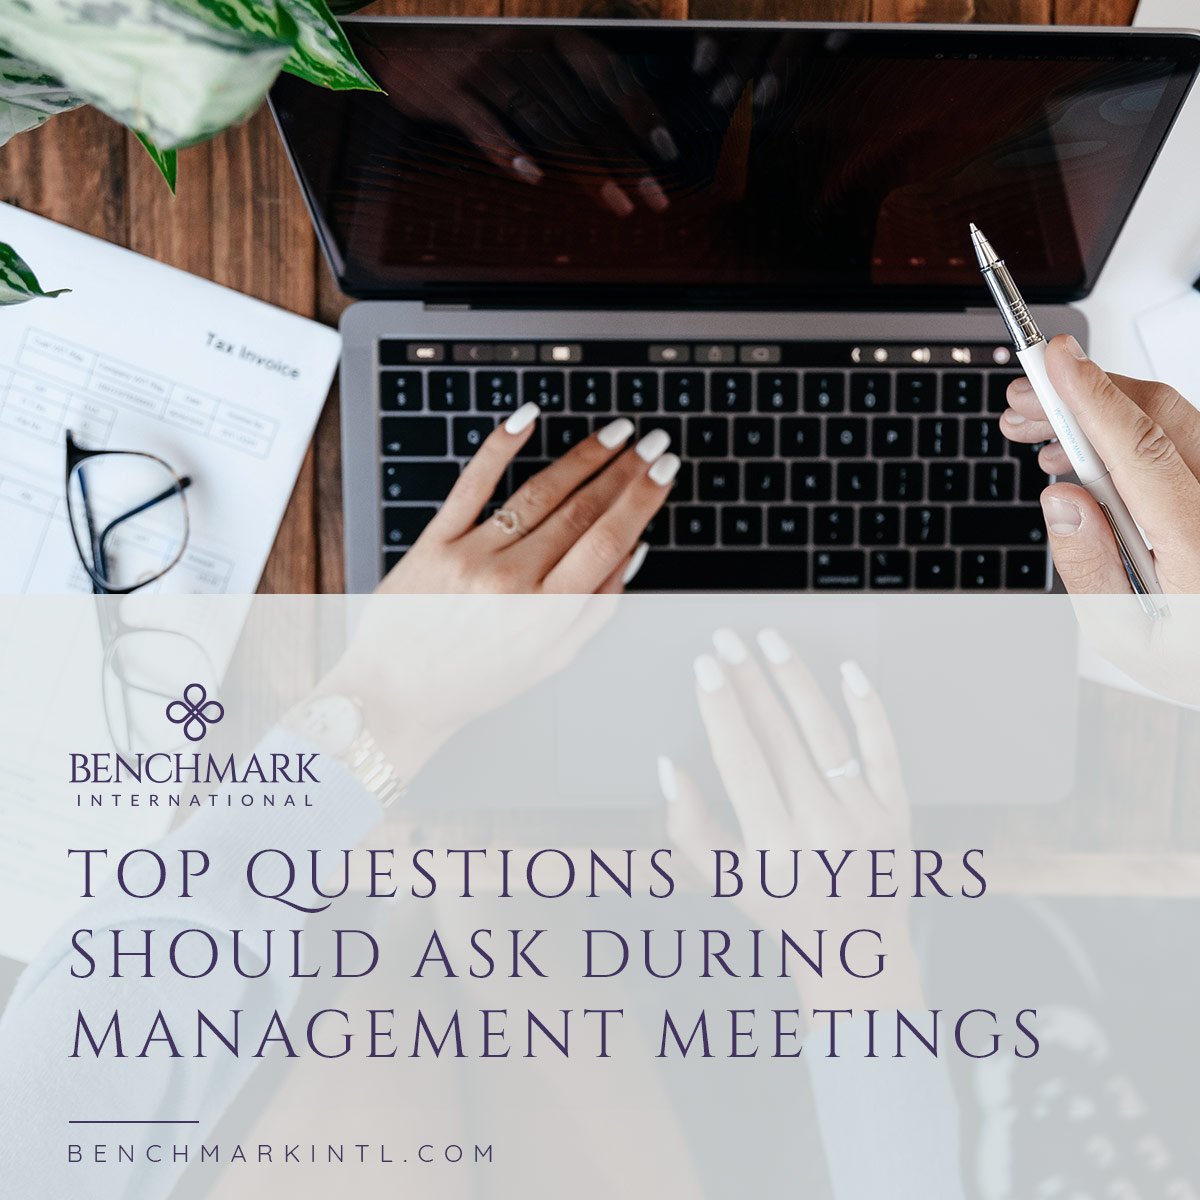 Top_Questions_Buyers_Should_Ask_during_Management_Meetings_When_Acquiring_a_Company_Social(2)